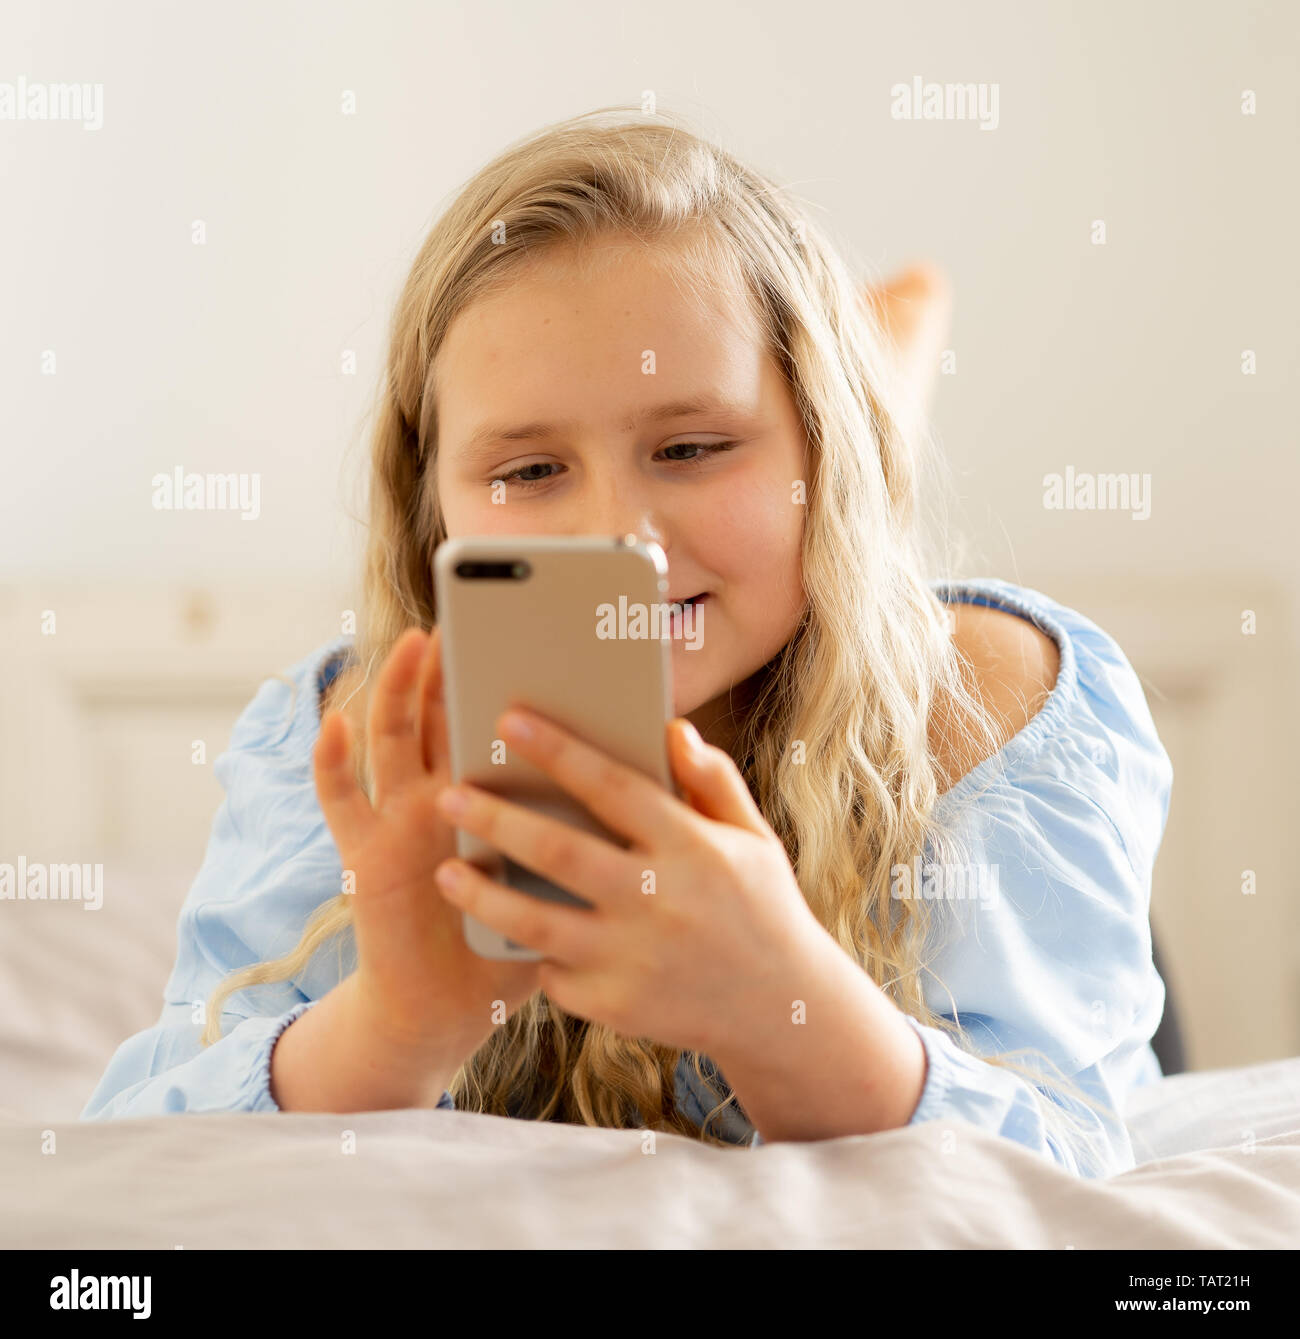 Beautiful blonde happy little girl playing on mobile phone. Cute child chatting on the internet with smartphone social media app lying in bed at home. - Stock Image